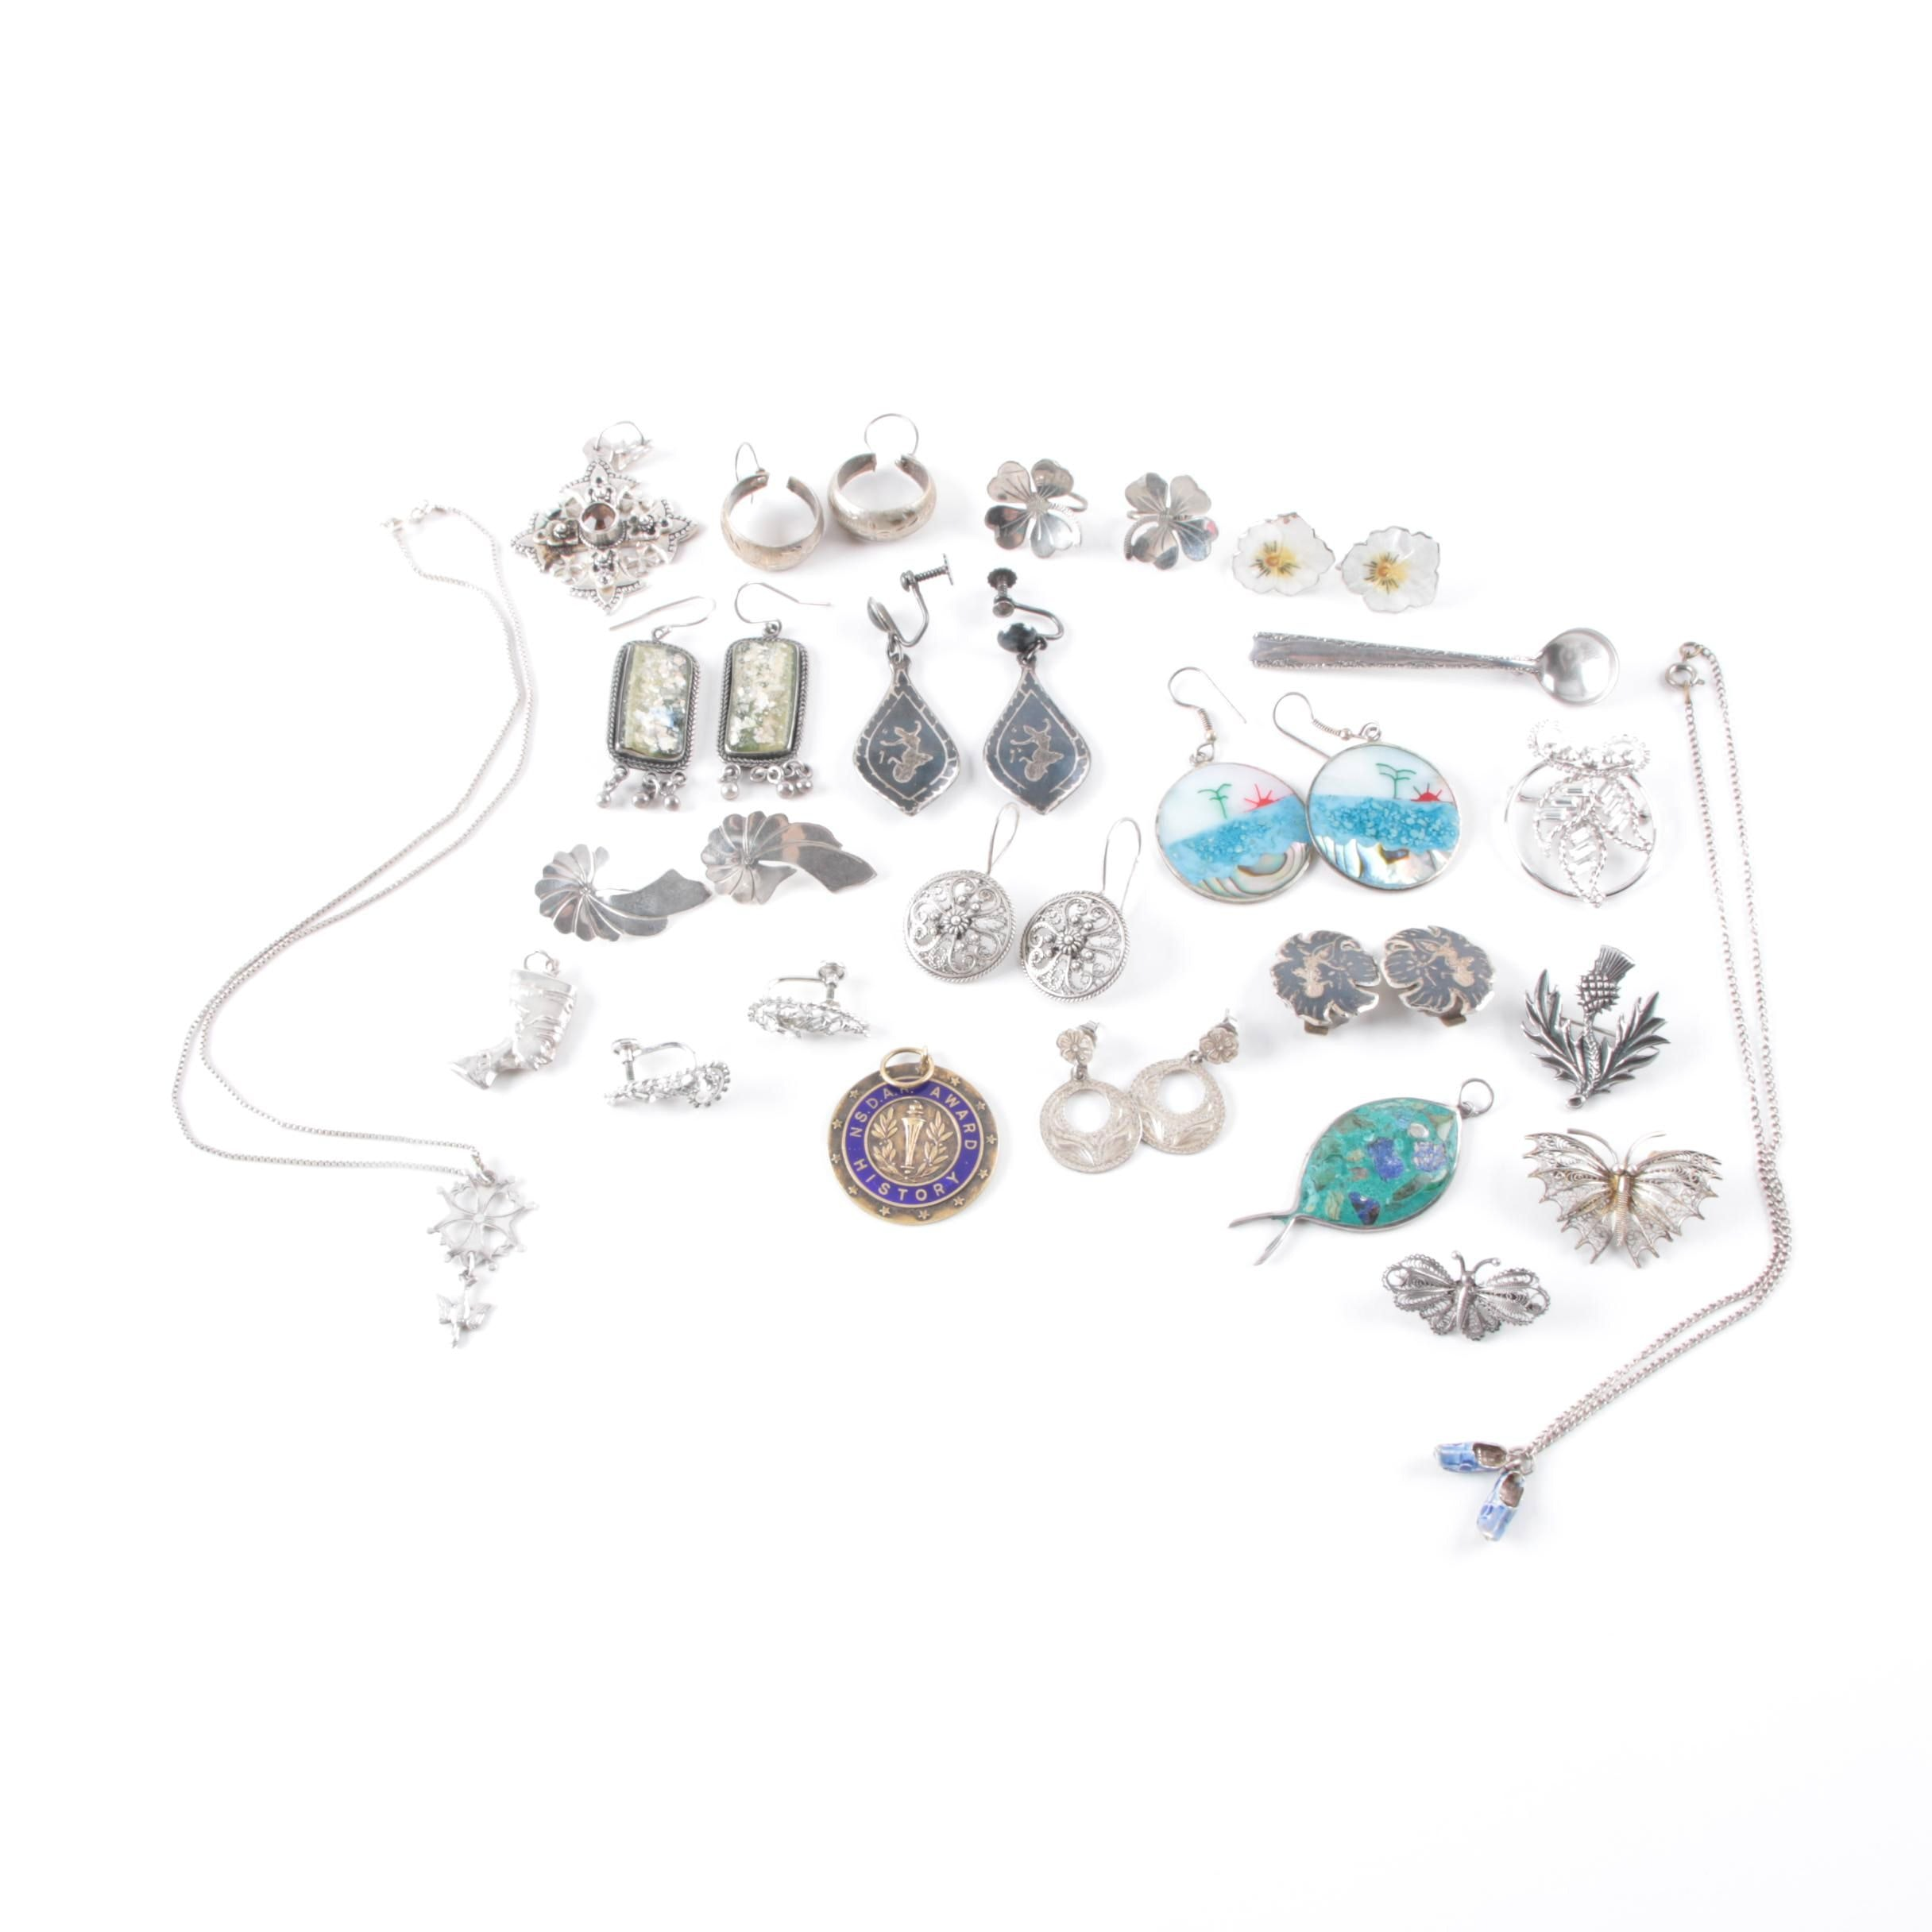 Sterling Silver Jewelry Made in Scotland, Turkey, Israel and Mexico